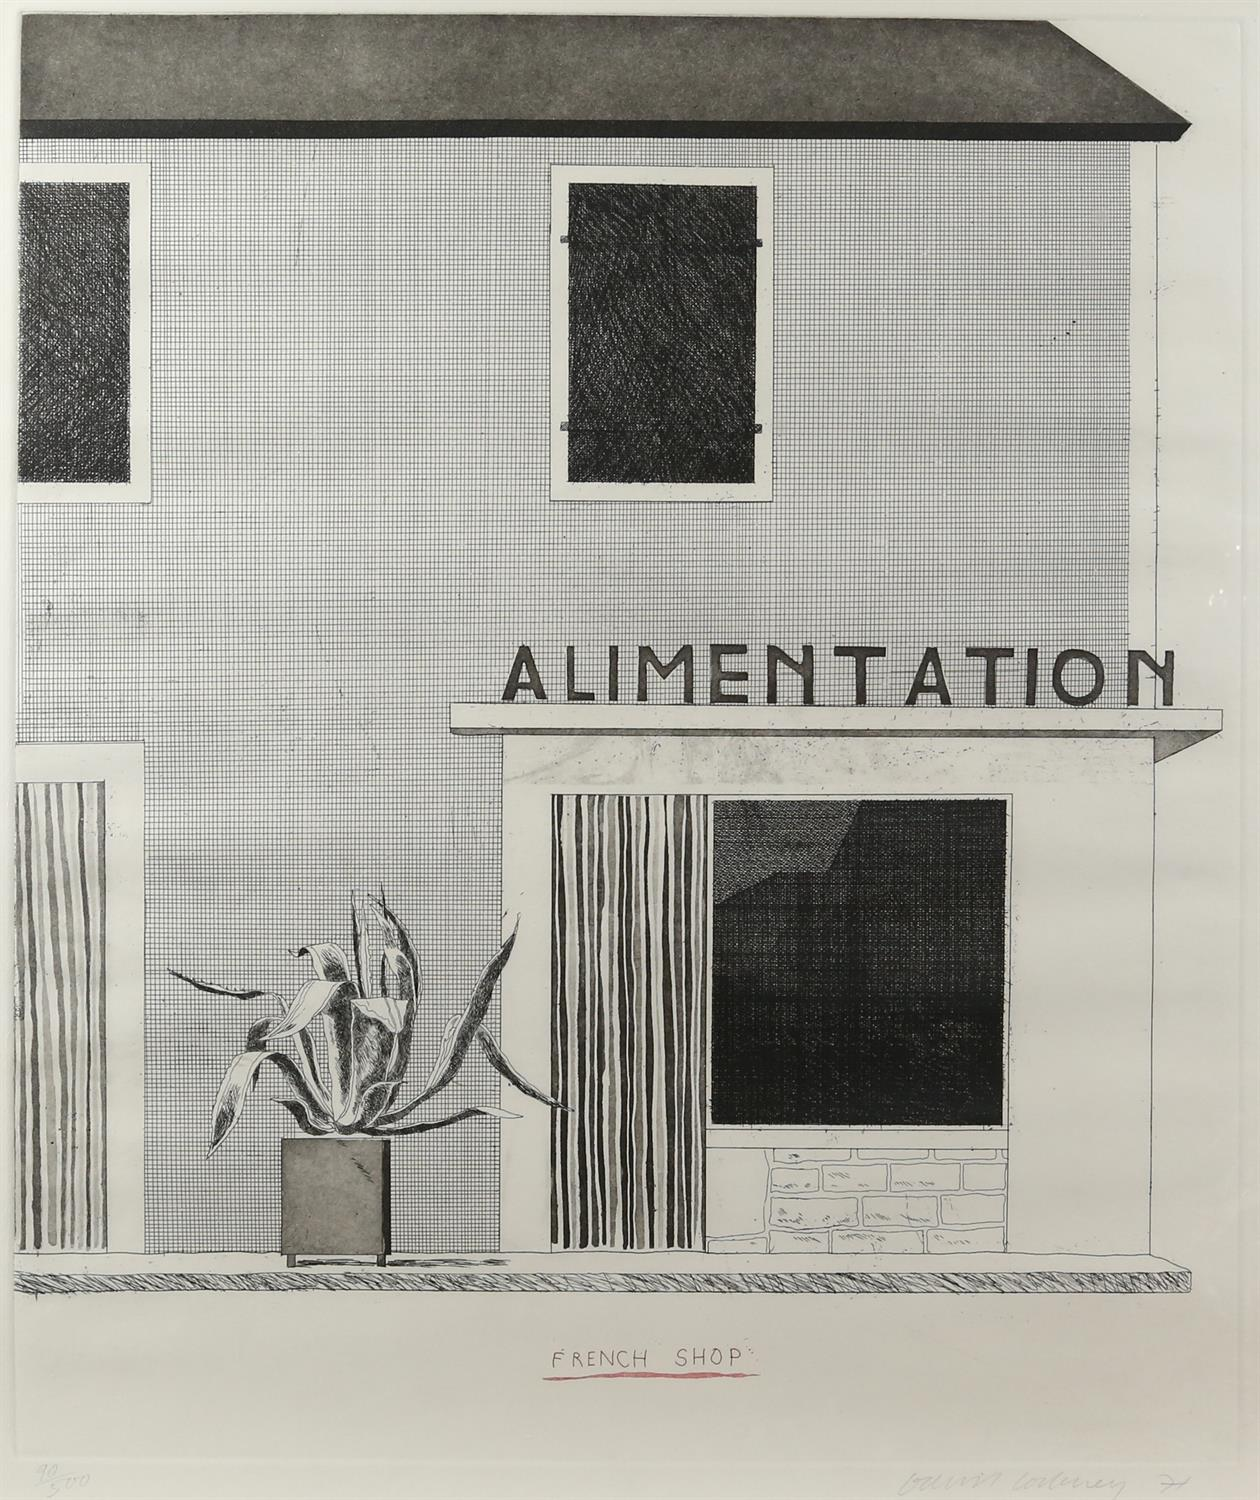 § David Hockney (British, b.1937). 'French Shop', etching and aquatint, signed and dated '71 in